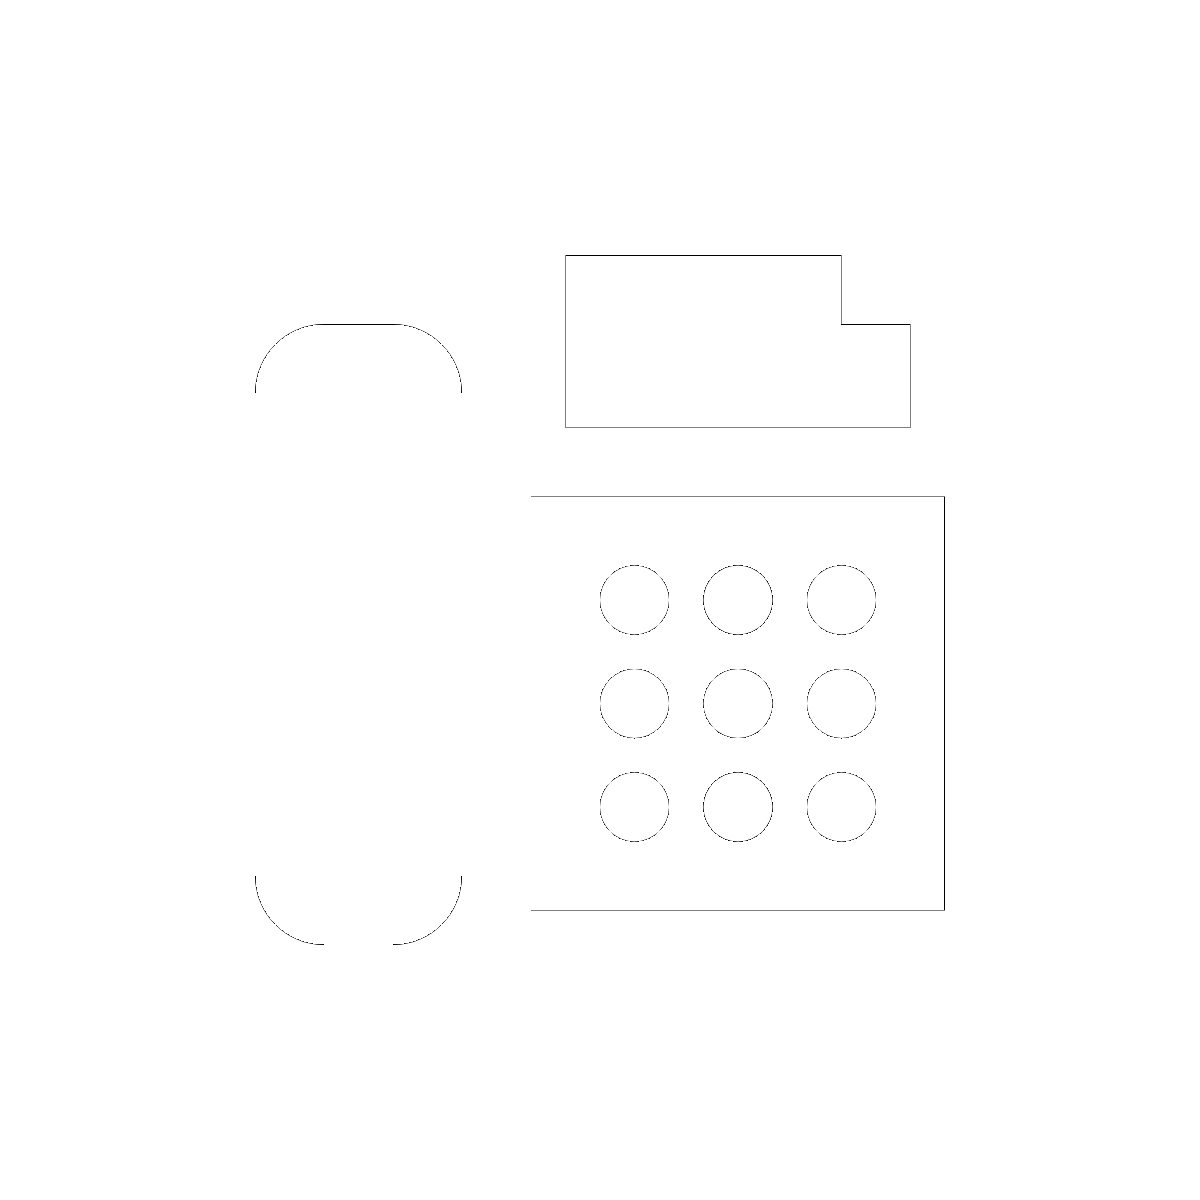 Symbol Compact Disks and Faxes